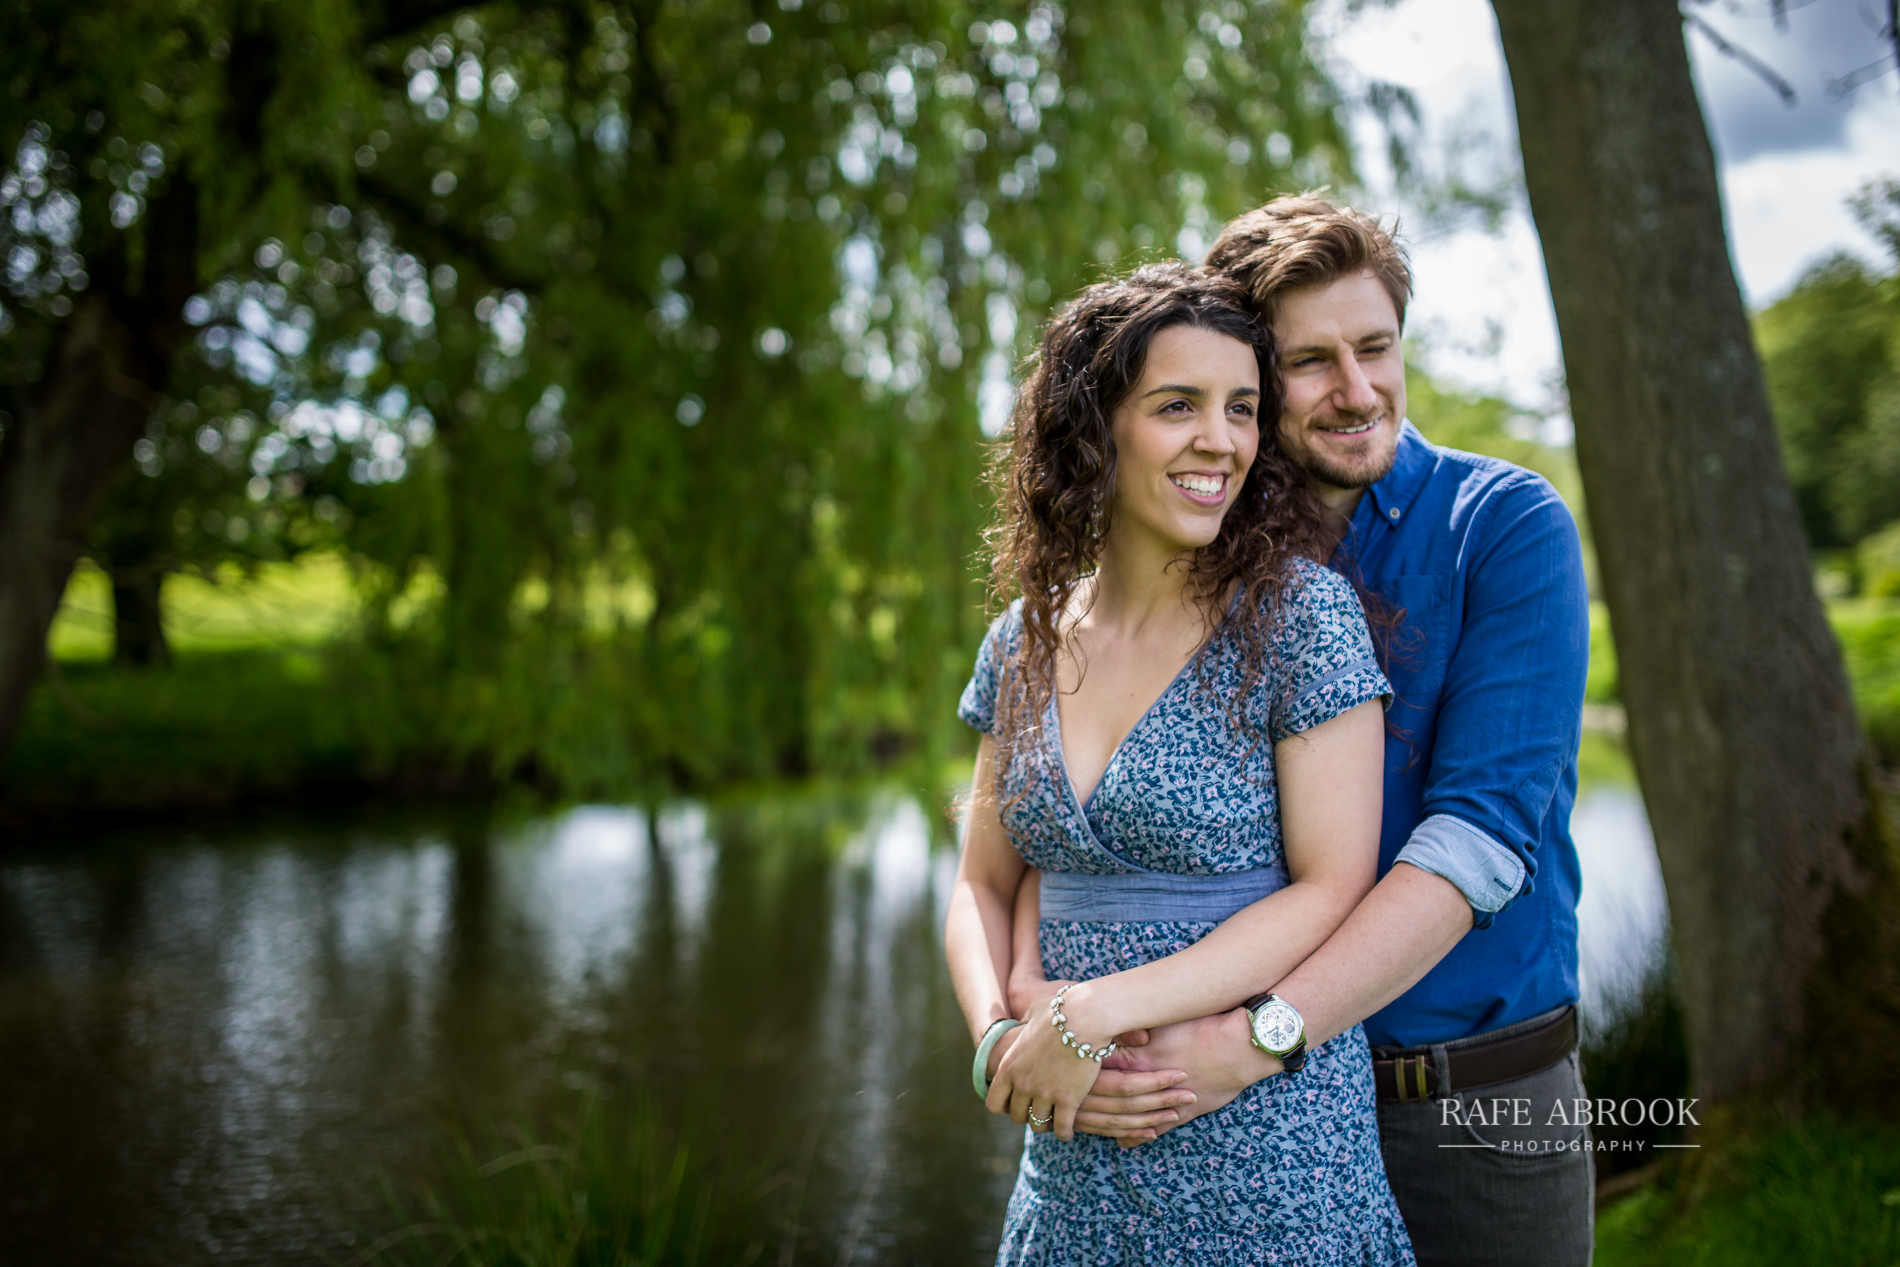 jade & sean engagement shoot knebworth park house hertfordshire-1046.jpg